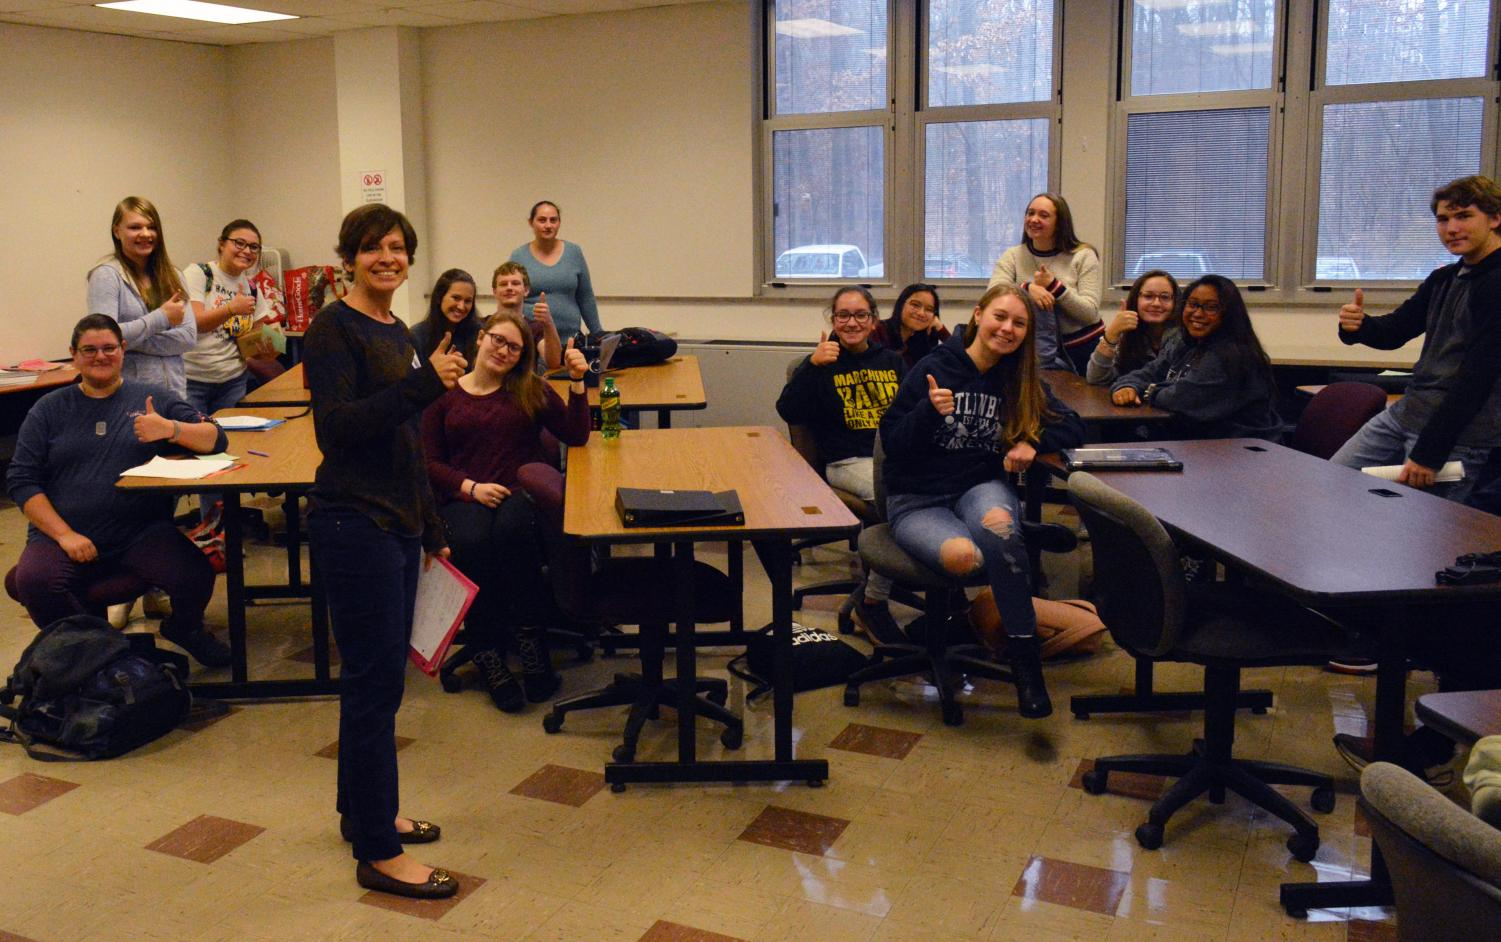 Mrs. Leah Deskevich (standing, front) returns to TAHS to help lead the Speech Team, along with her Co-Adviser Gabby McLarren (far back center).